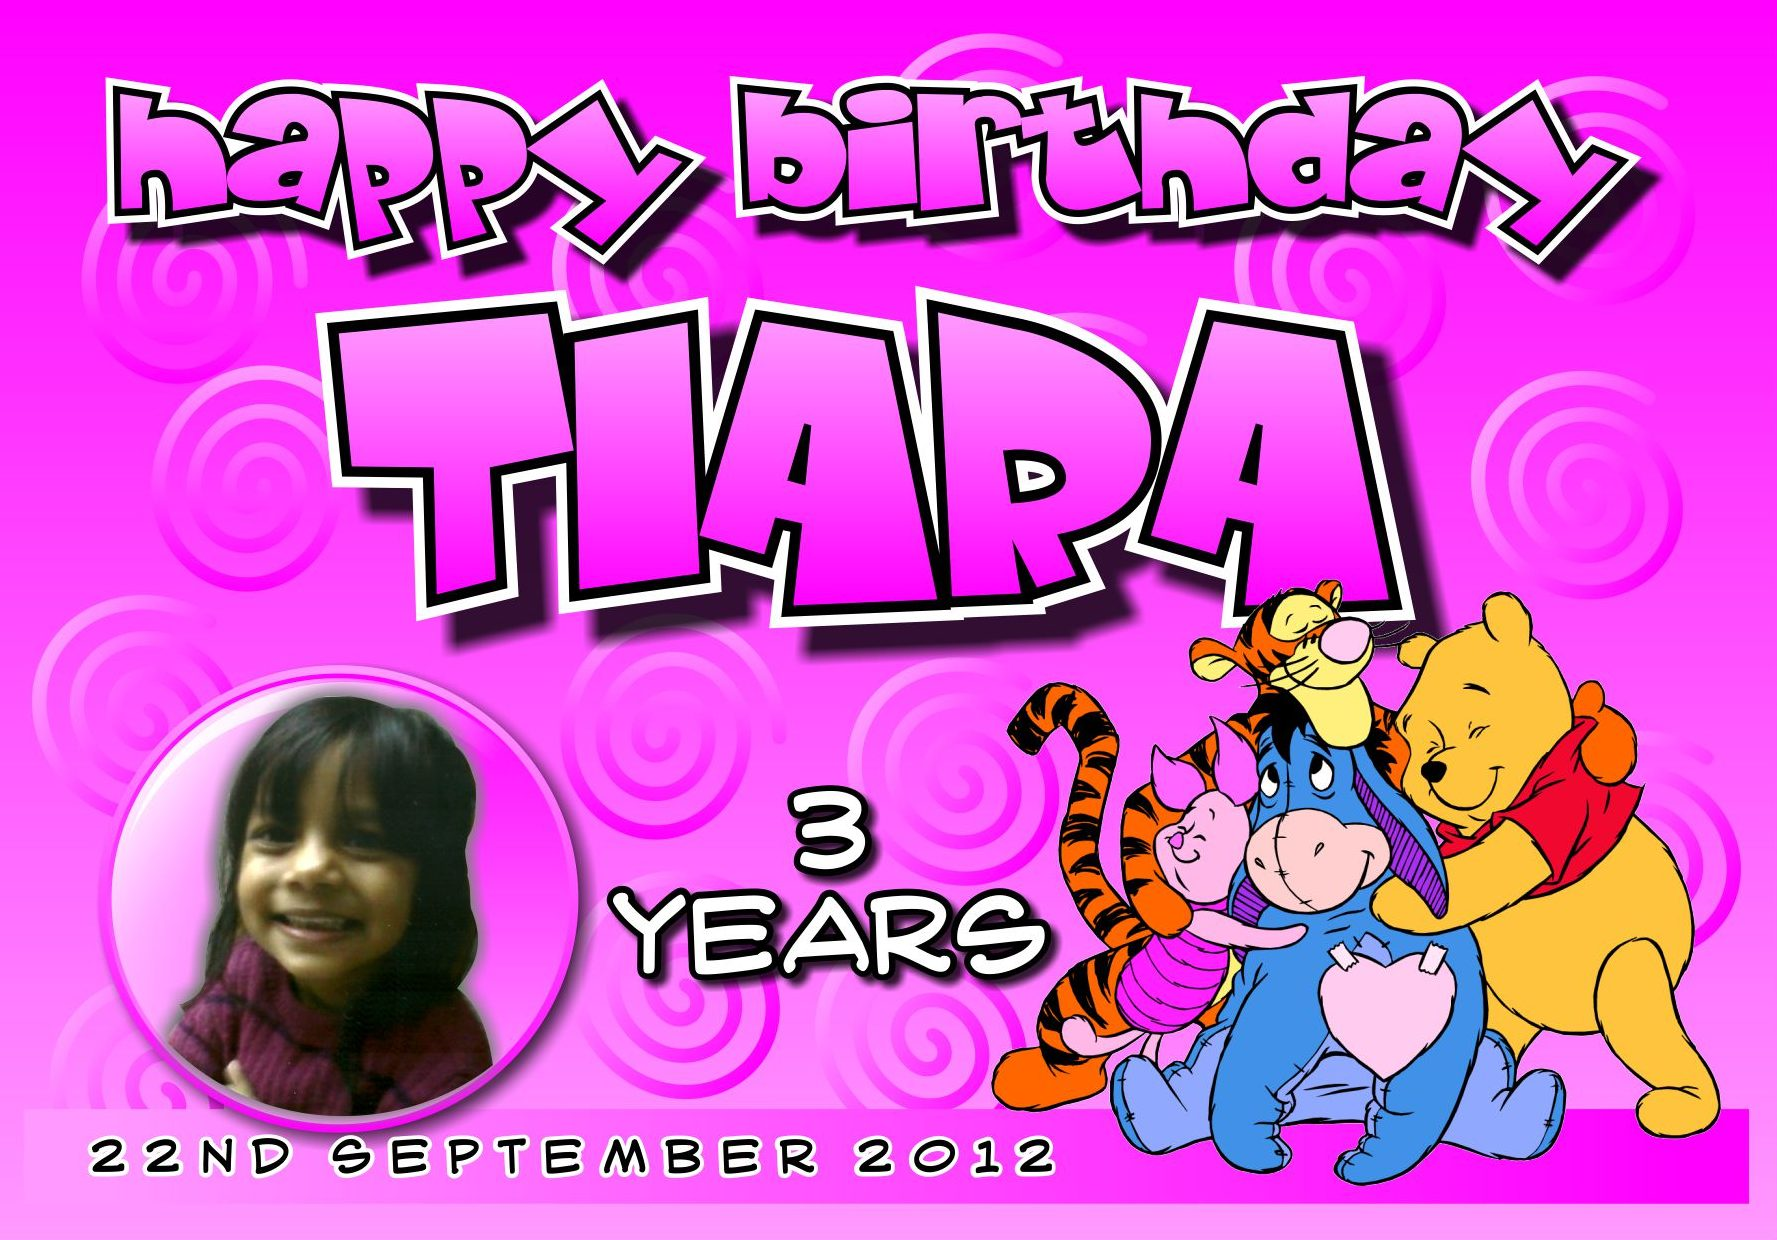 happy, birthdays, tiara, winnie, pooh, tigger, piglet, eyore, kids, childrens, banners, parties, party, fun, colourful, colorful, pink, spiral, patterns, cute,